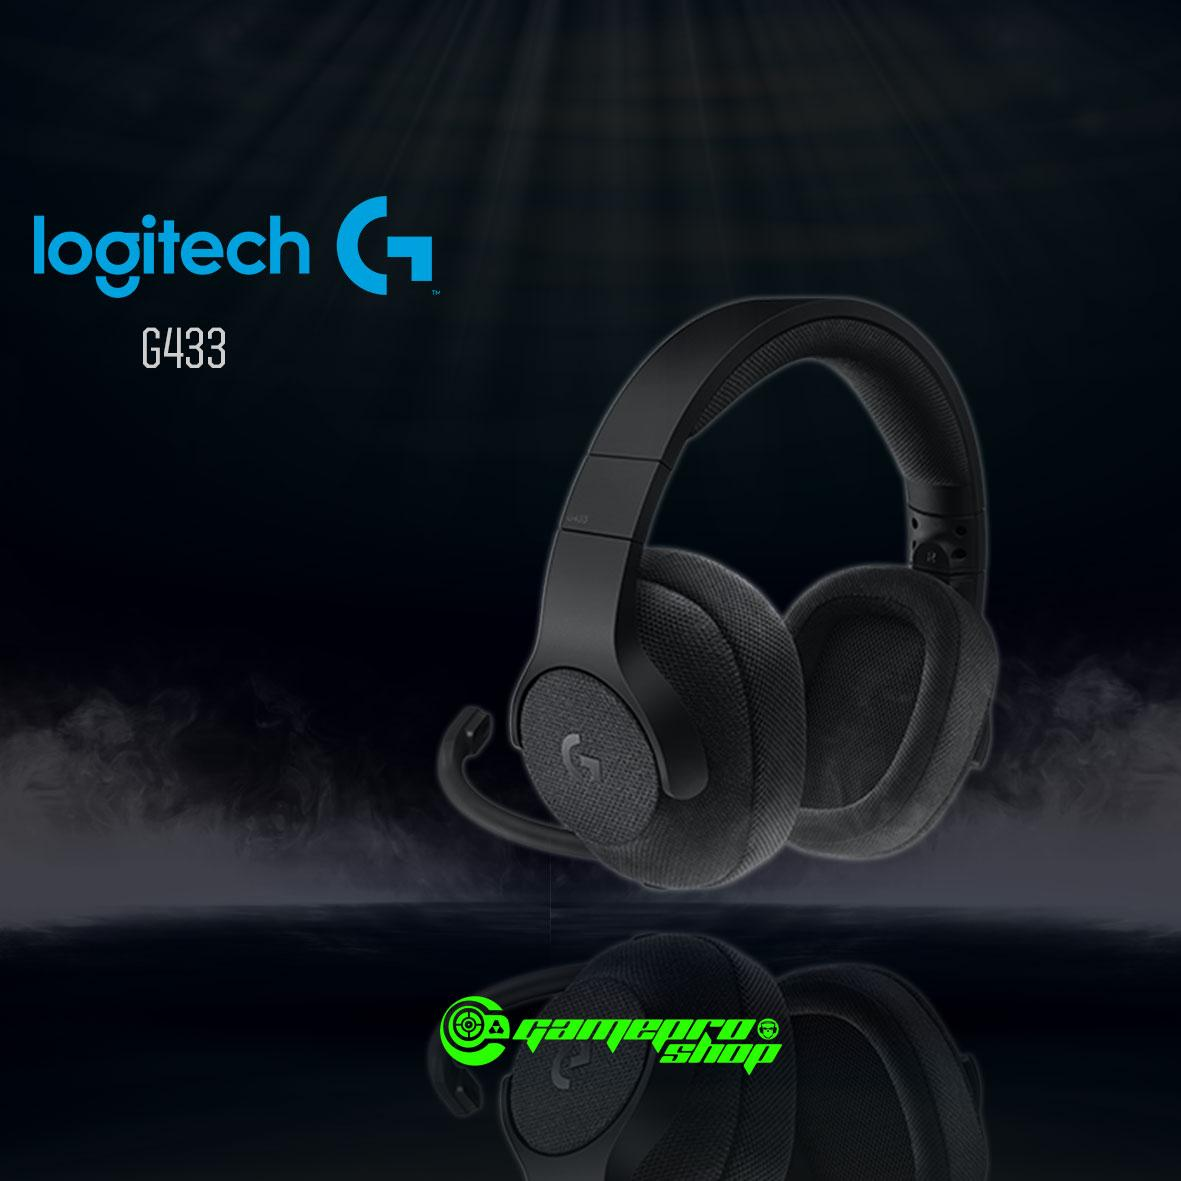 Lowest Price Logitech G433 Black Red Blue 7 1 Wired Gaming Headset With Dts Headphone X 7 1 Surround For Pc Ps4 Ps4 Pro Xbox One Xbox One S Nintendo Switch Gss Promo